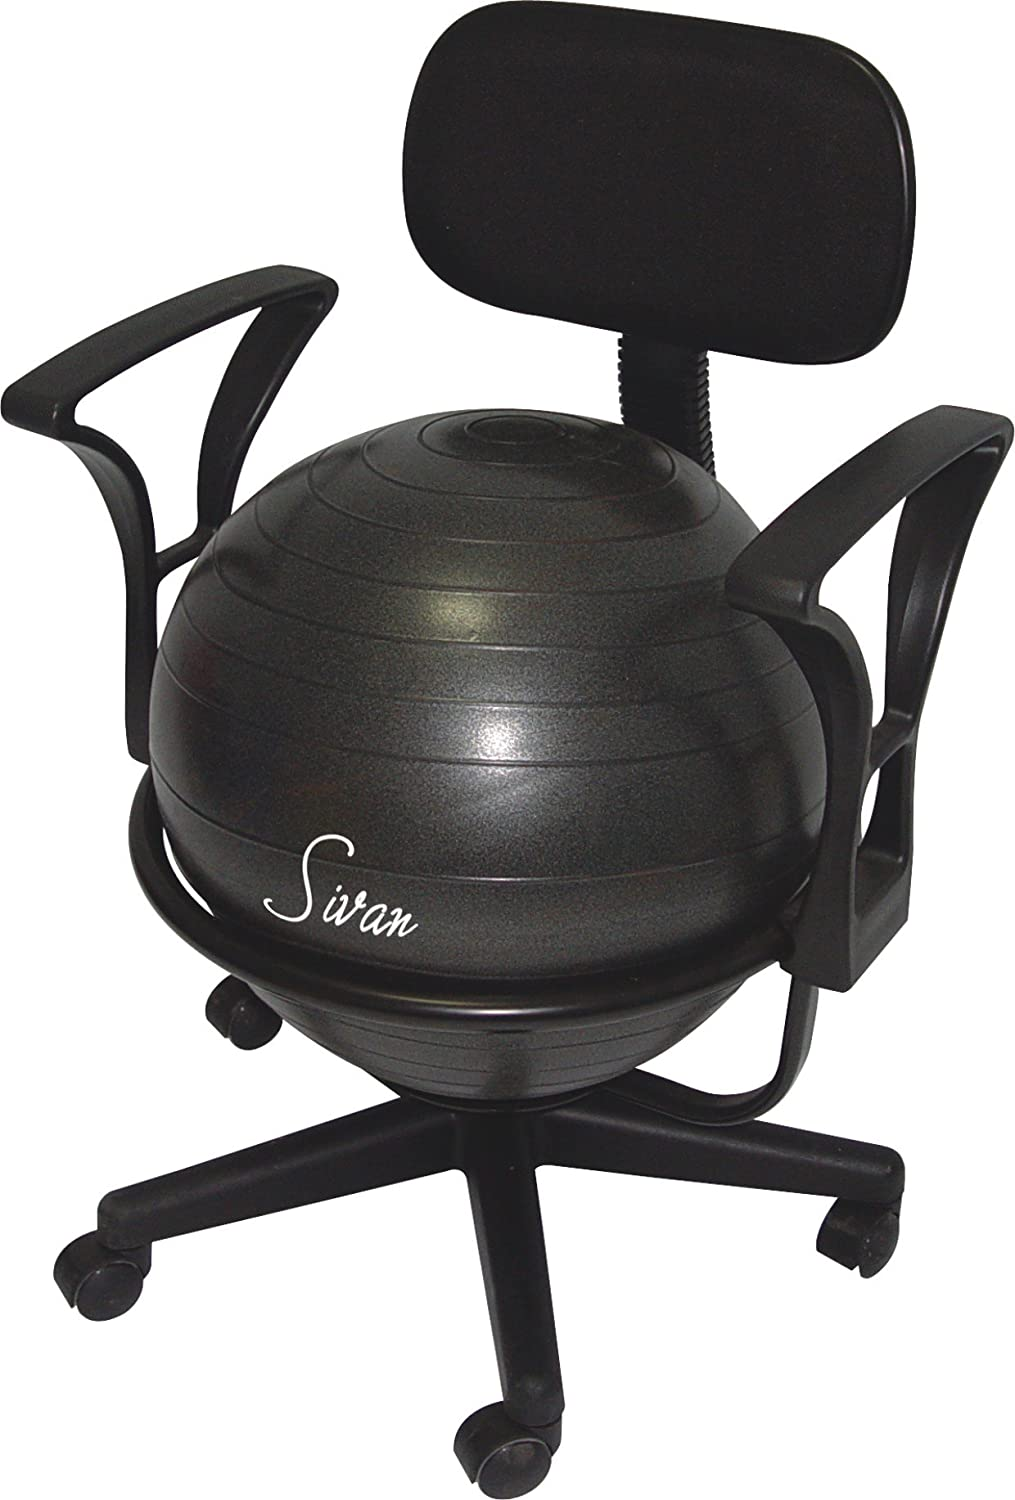 nice exercise ball chairs #1 - Amazon.com: Sivan Health and Fitness Arm Rest Balance Ball Low Fit Chair  with Ball and Pump: Health u0026 Personal Care